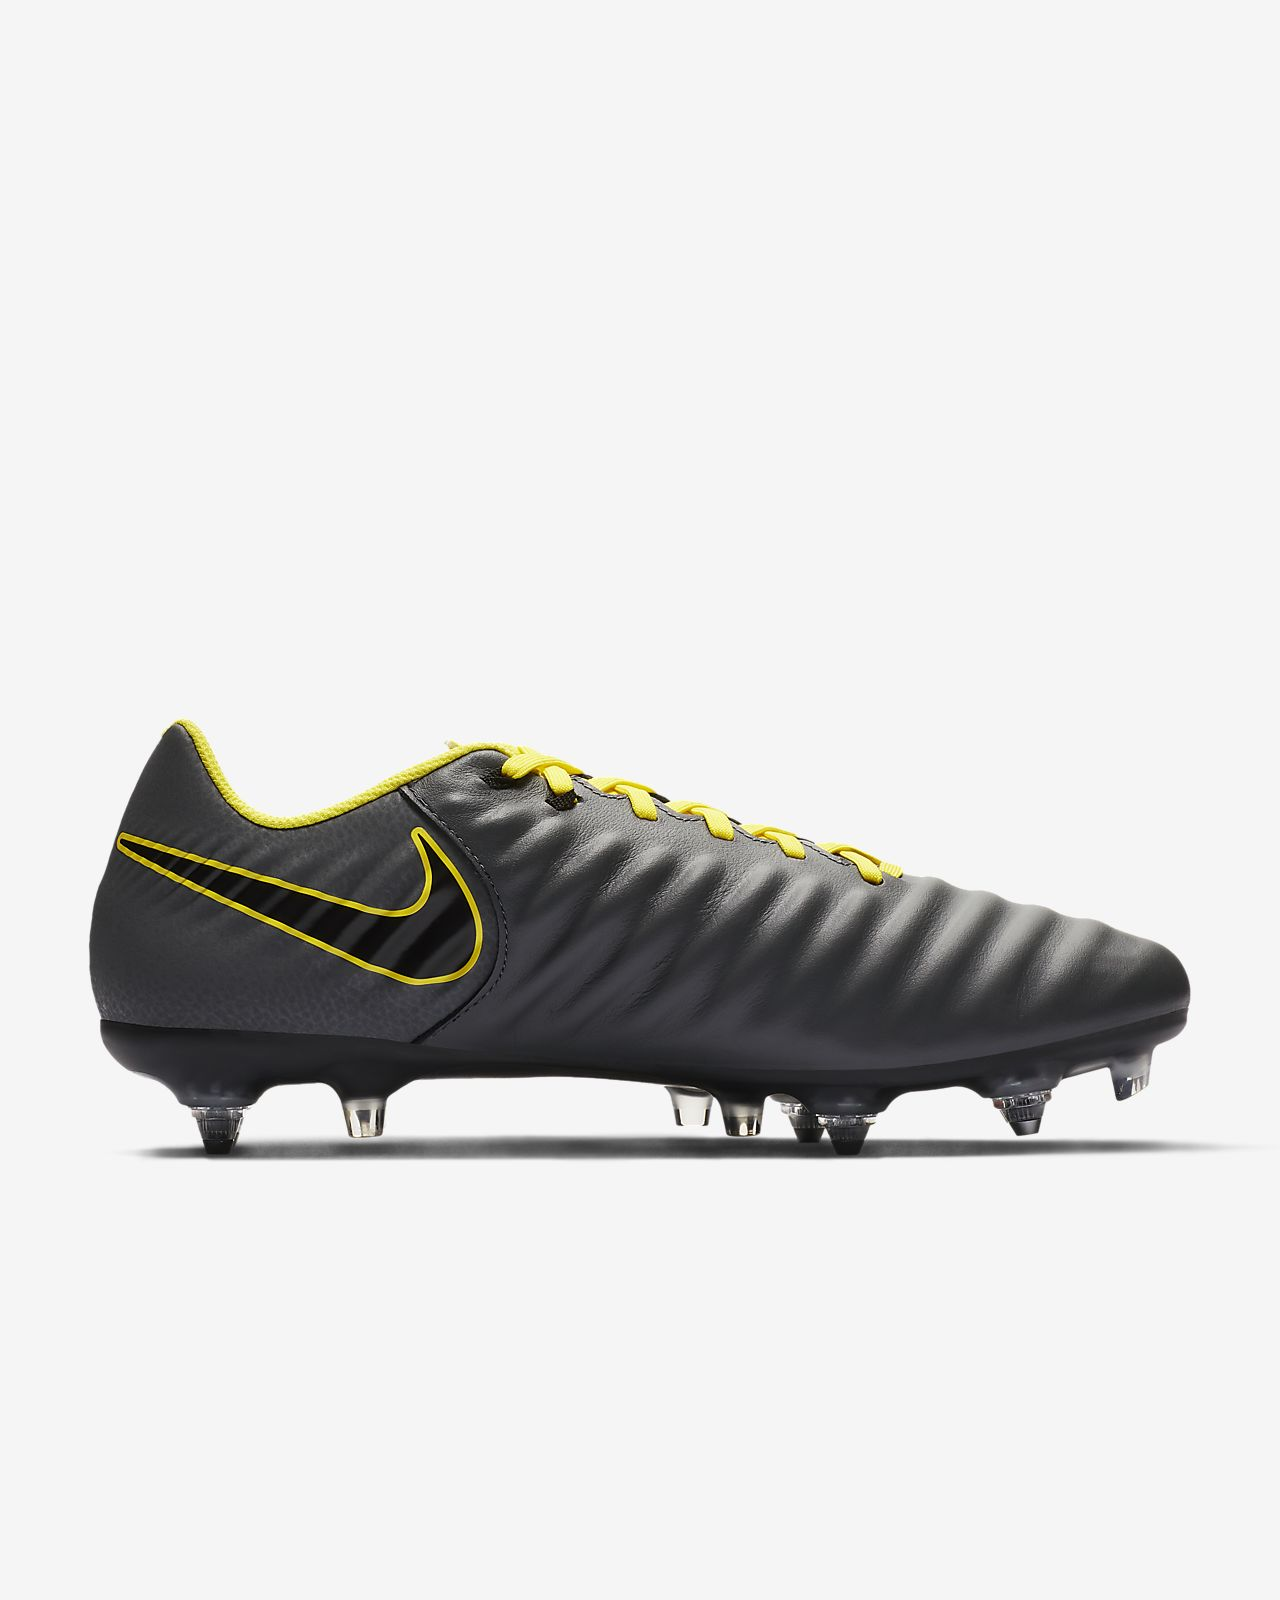 new style efaf2 9e7c9 ... Nike Legend 7 Academy SG-Pro Anti-Clog Traction Soft-Ground Pro Football